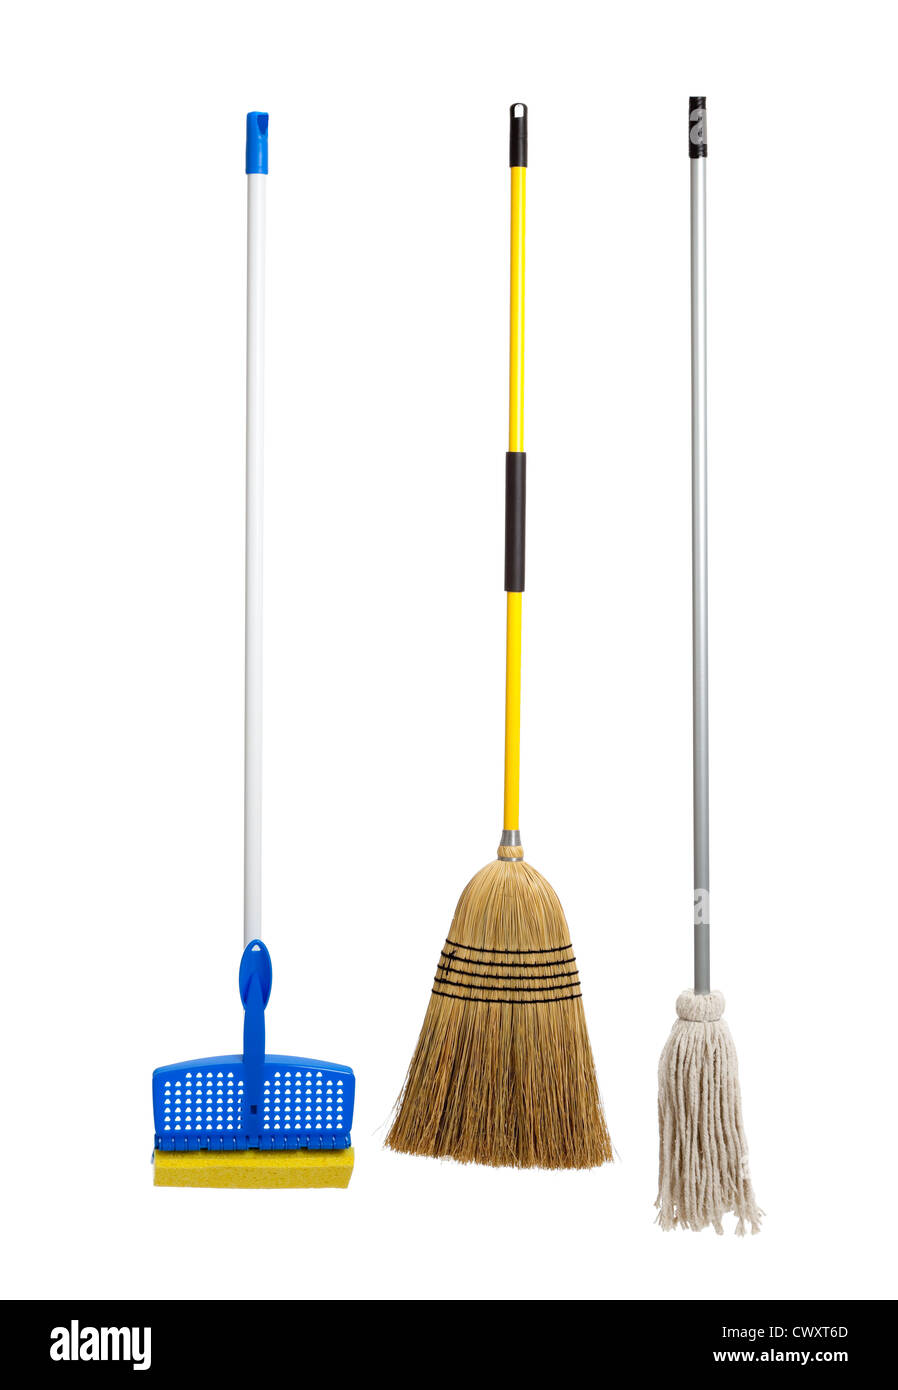 Sponge mop, straw broom and a string mop on a white background - Stock Image